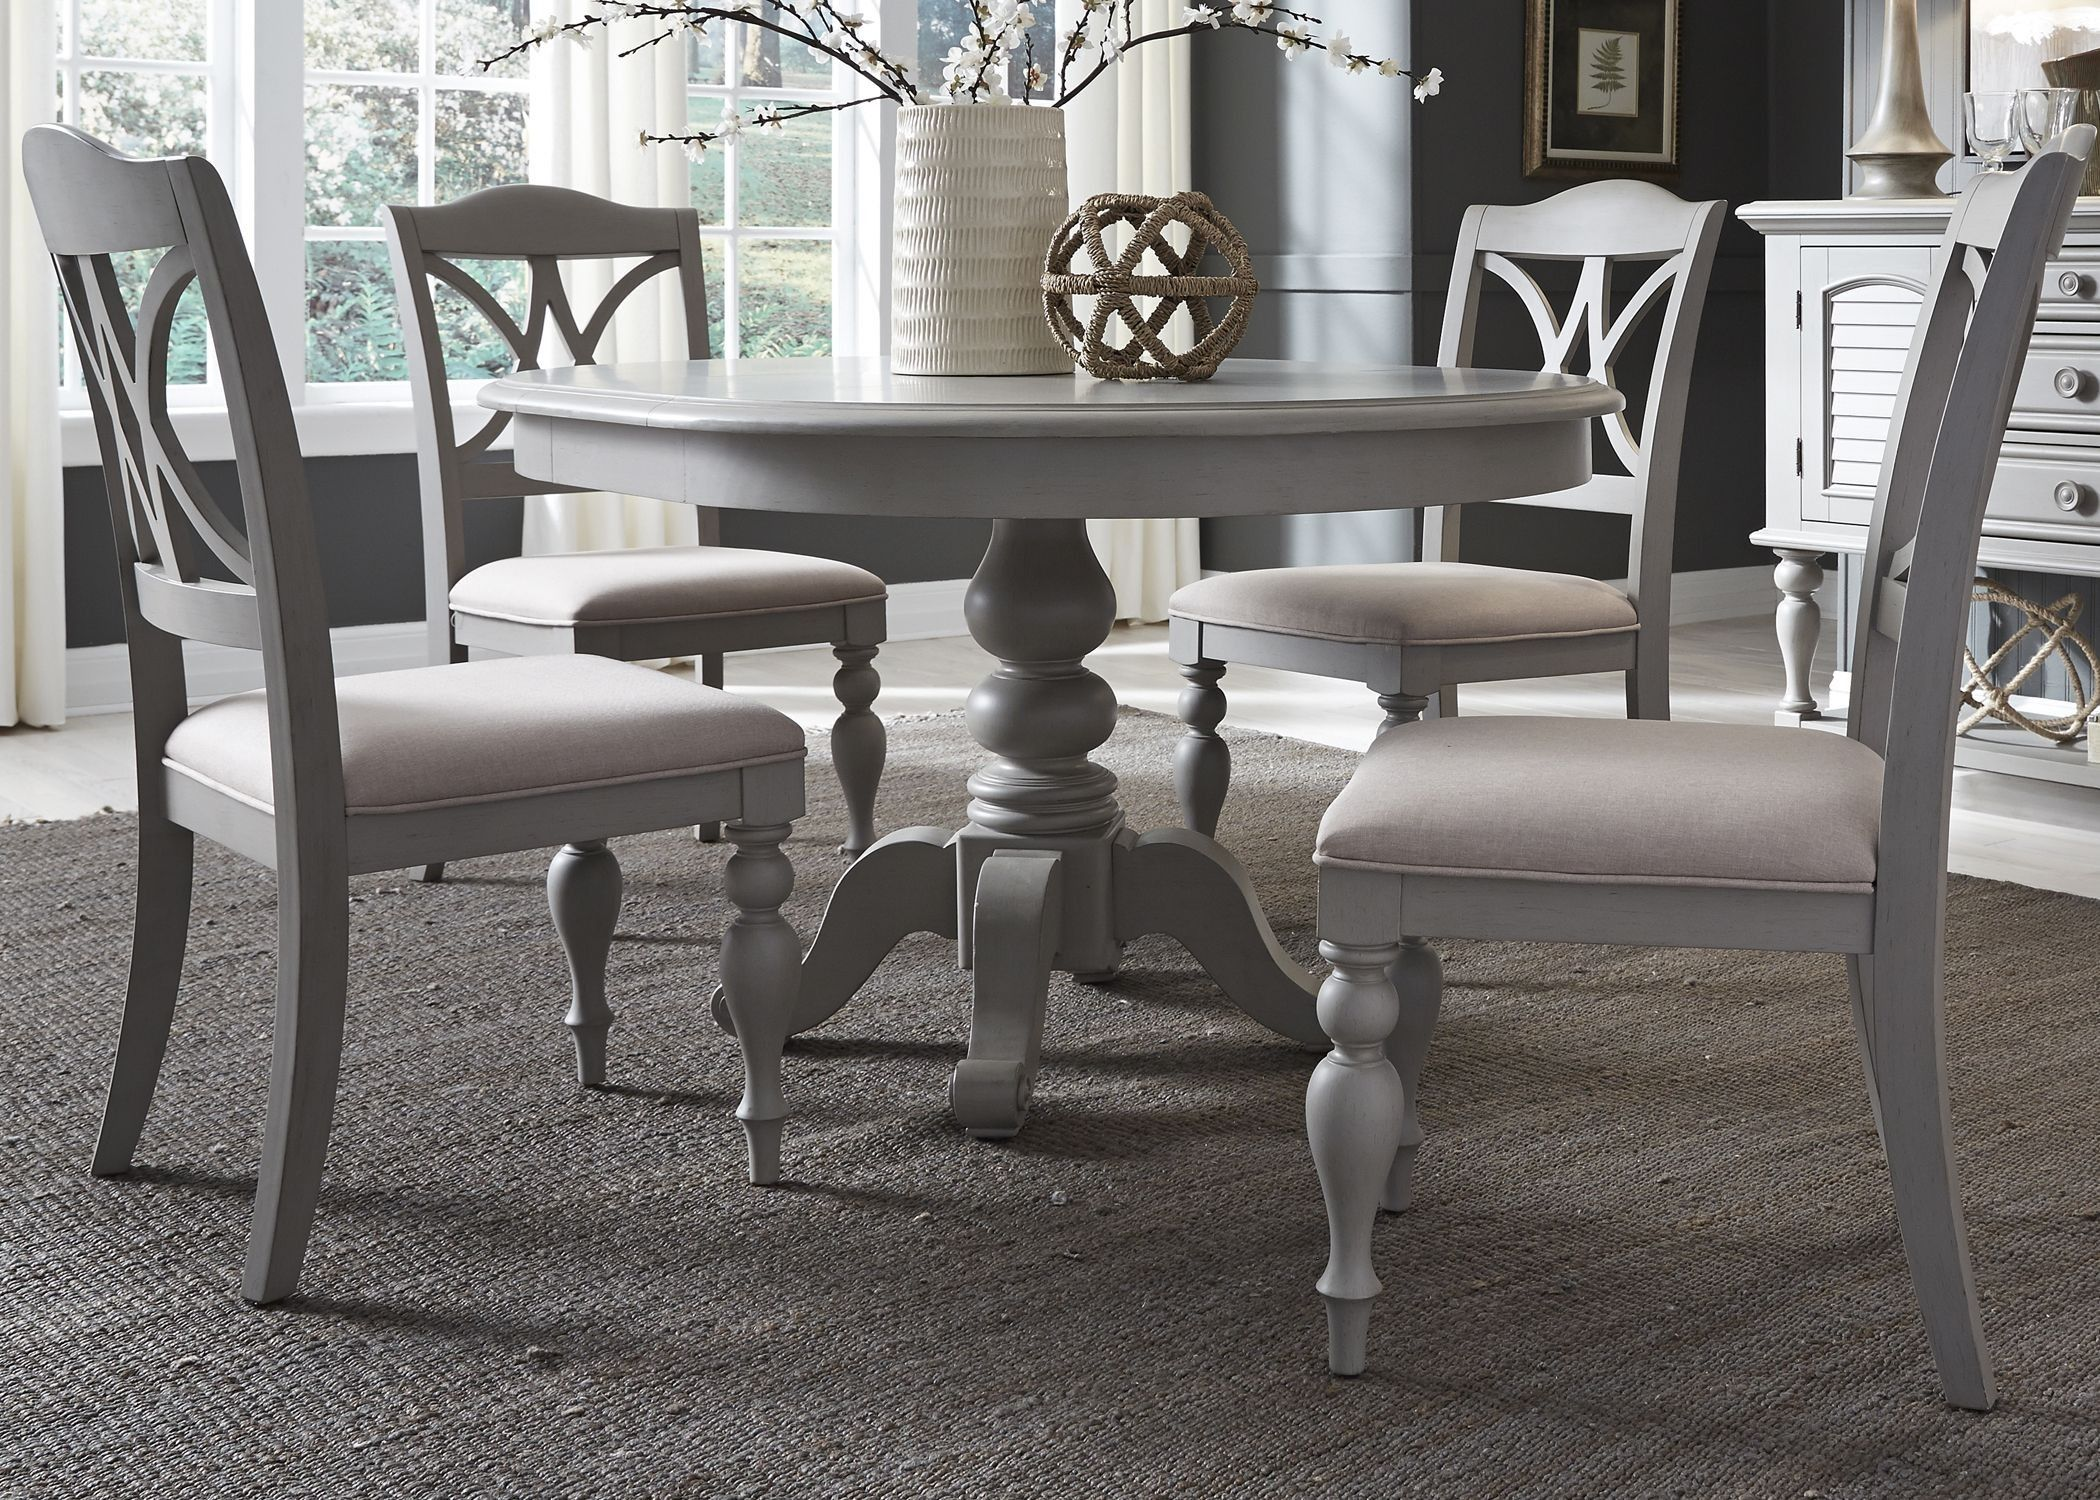 Explore Round Extendable Dining Table And More